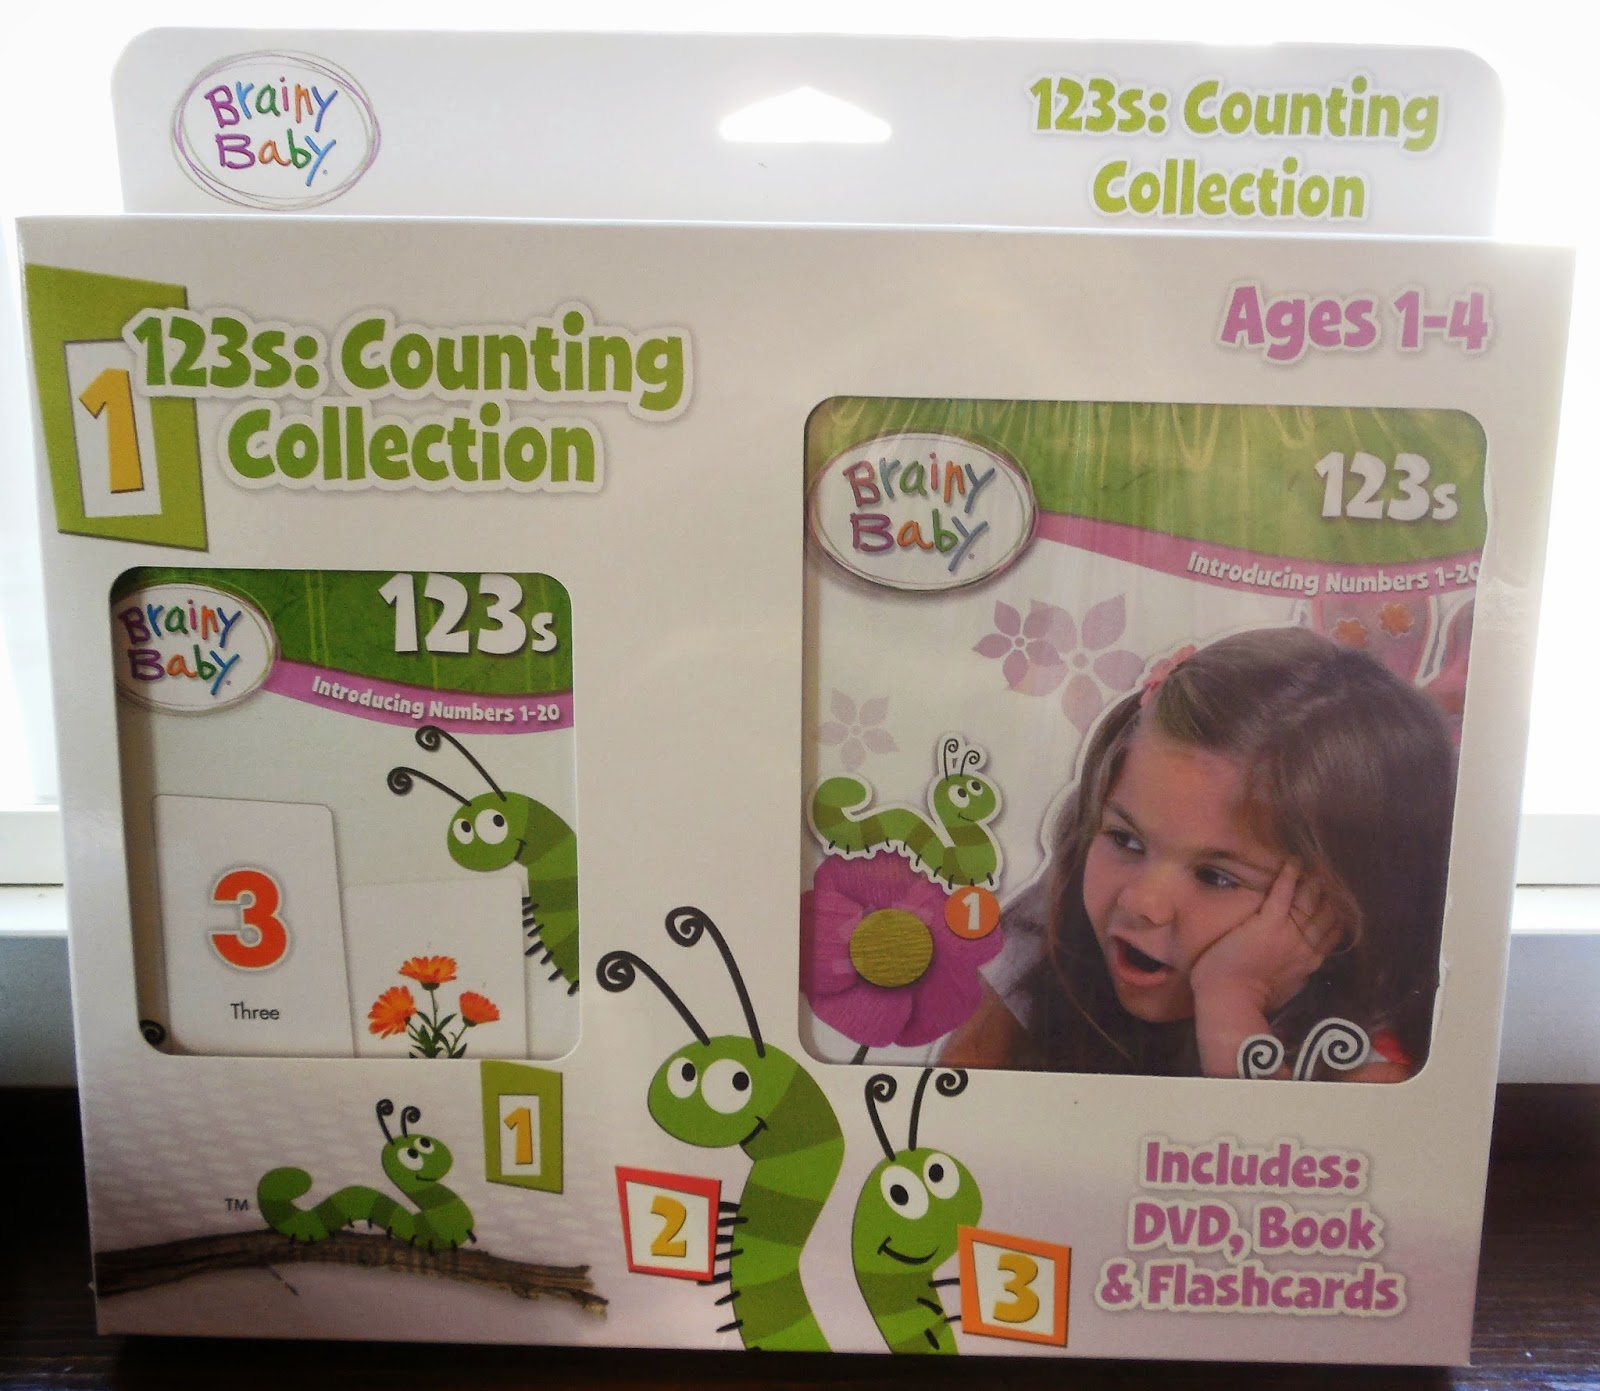 Brainy Baby Counting Collection